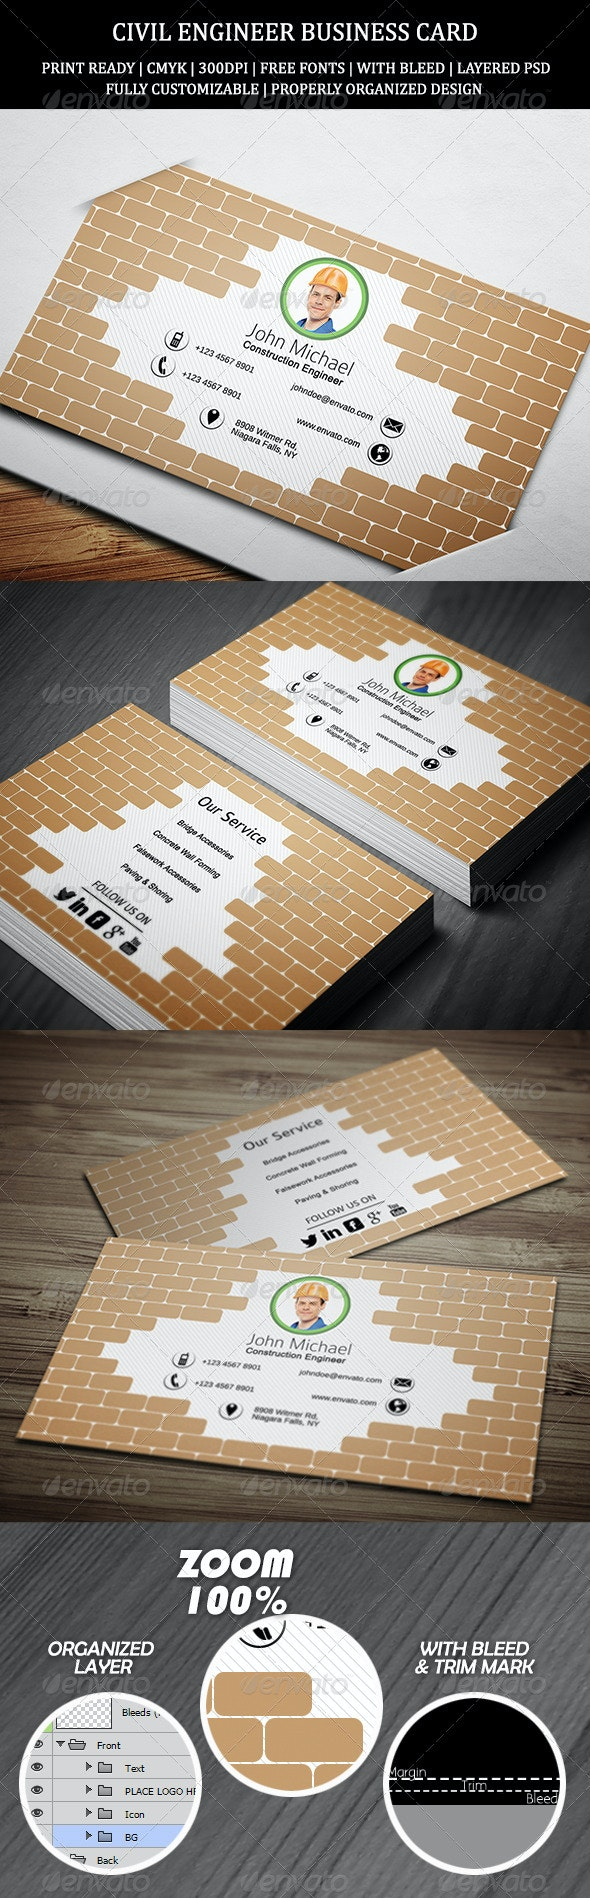 Civil Engineer Business Card 1 - Creative Business Cards